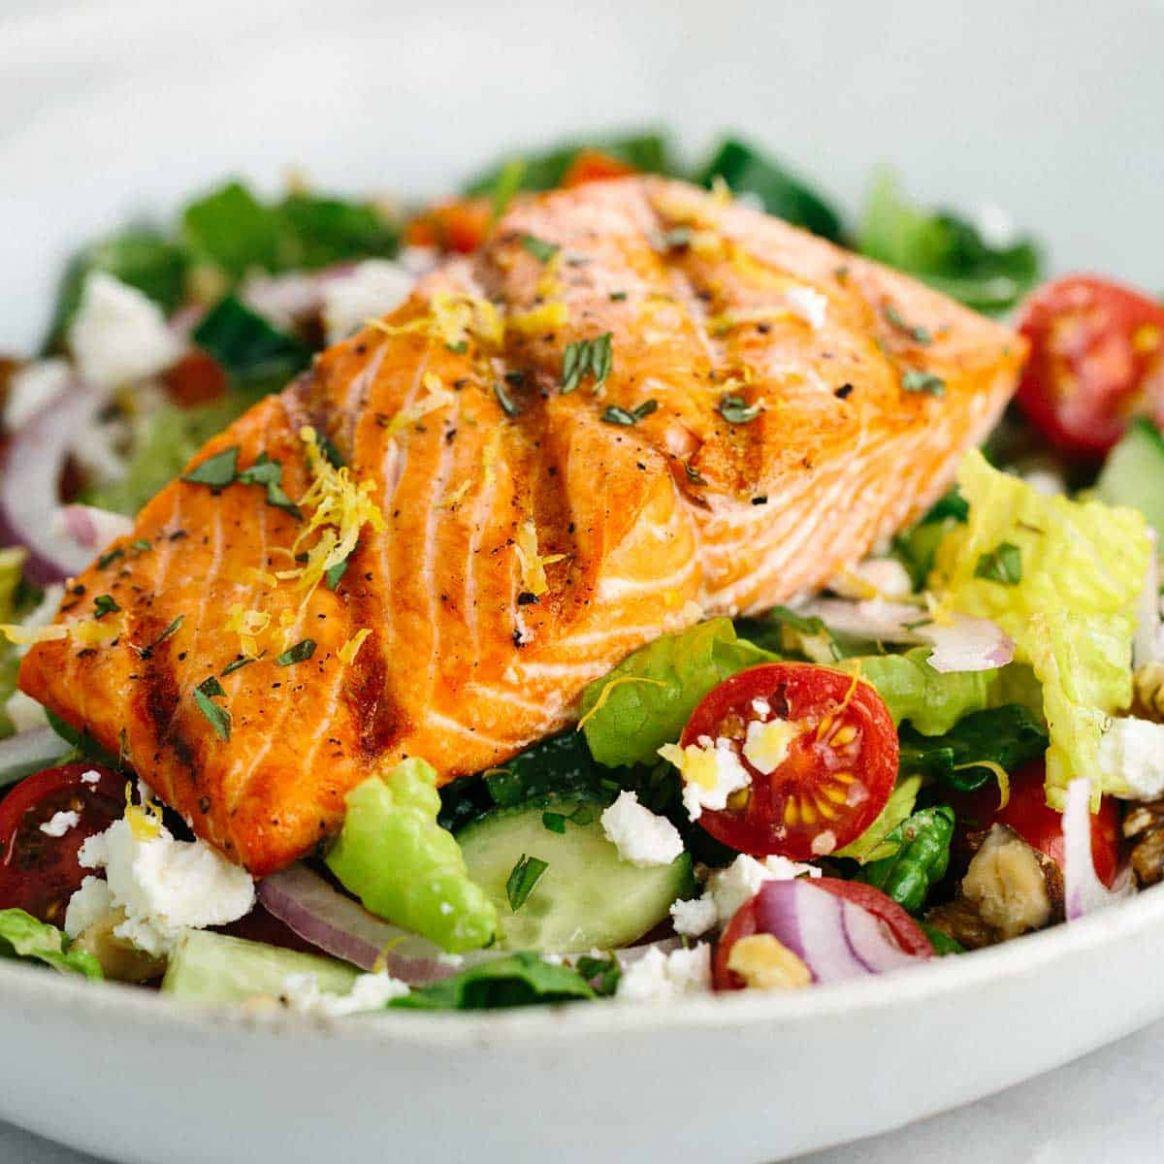 Salmon Greek Salad with Lemon Basil Dressing - Salad Recipes To Go With Fish